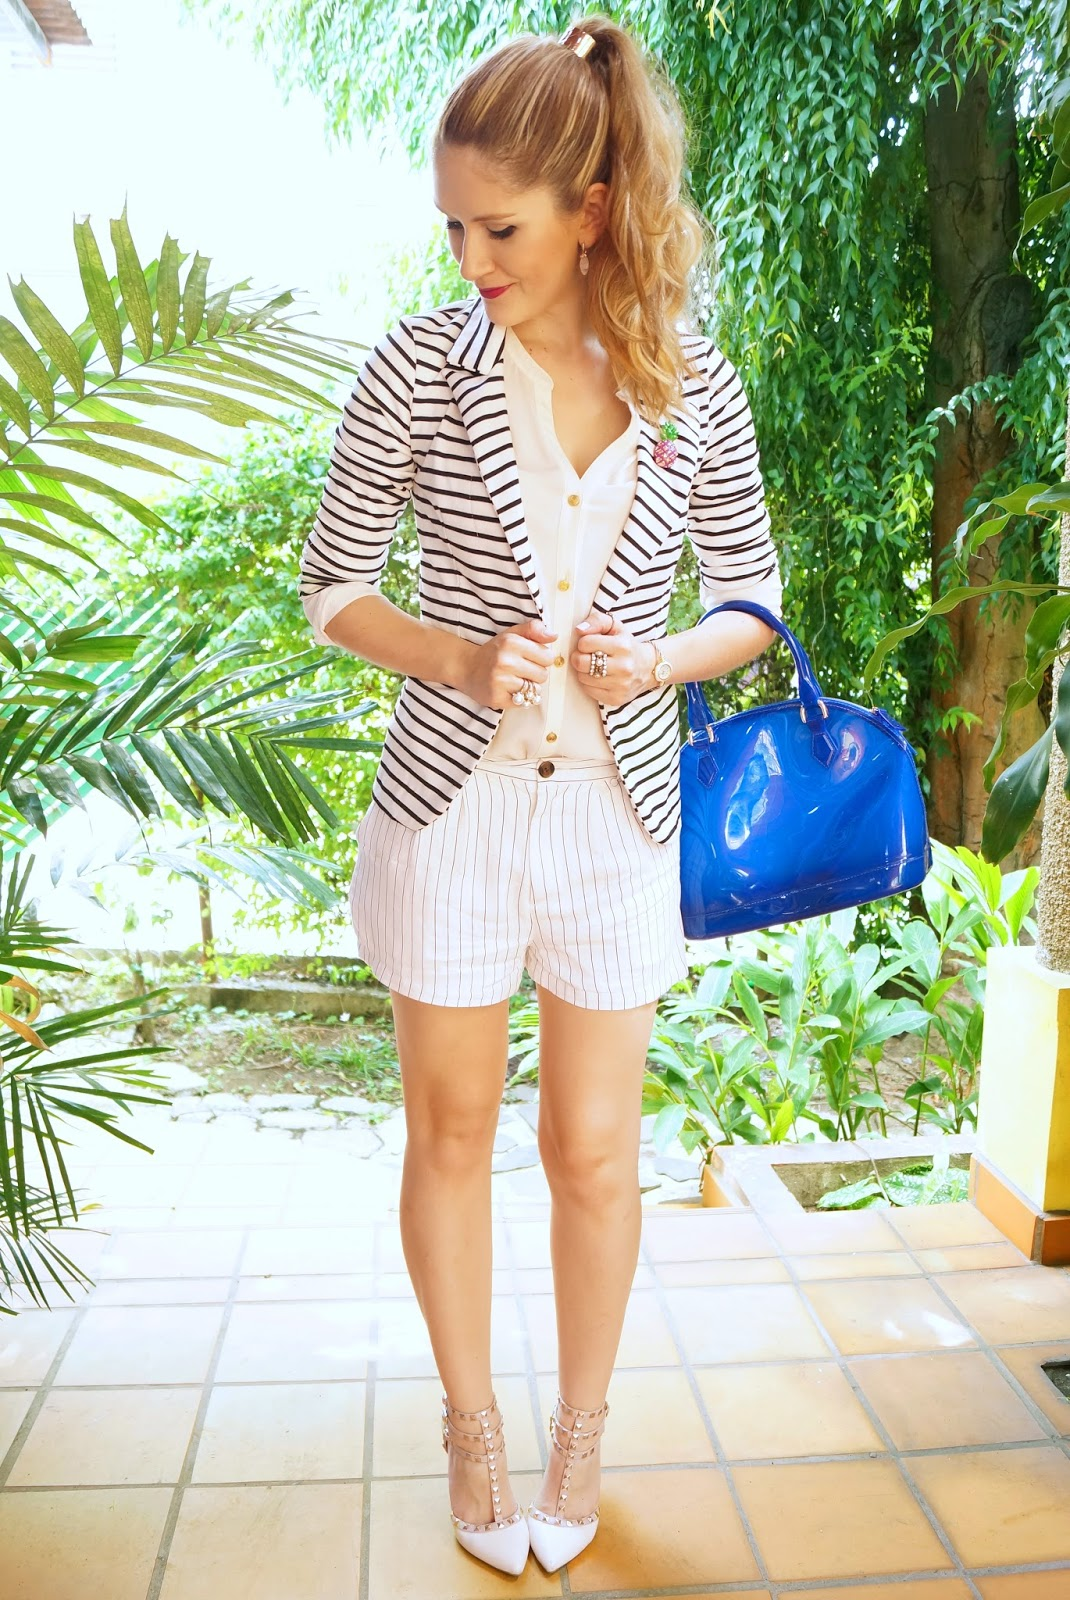 Shorts mixed with Blazers look so chic and up to date; kudos if you can mix patterns as well!